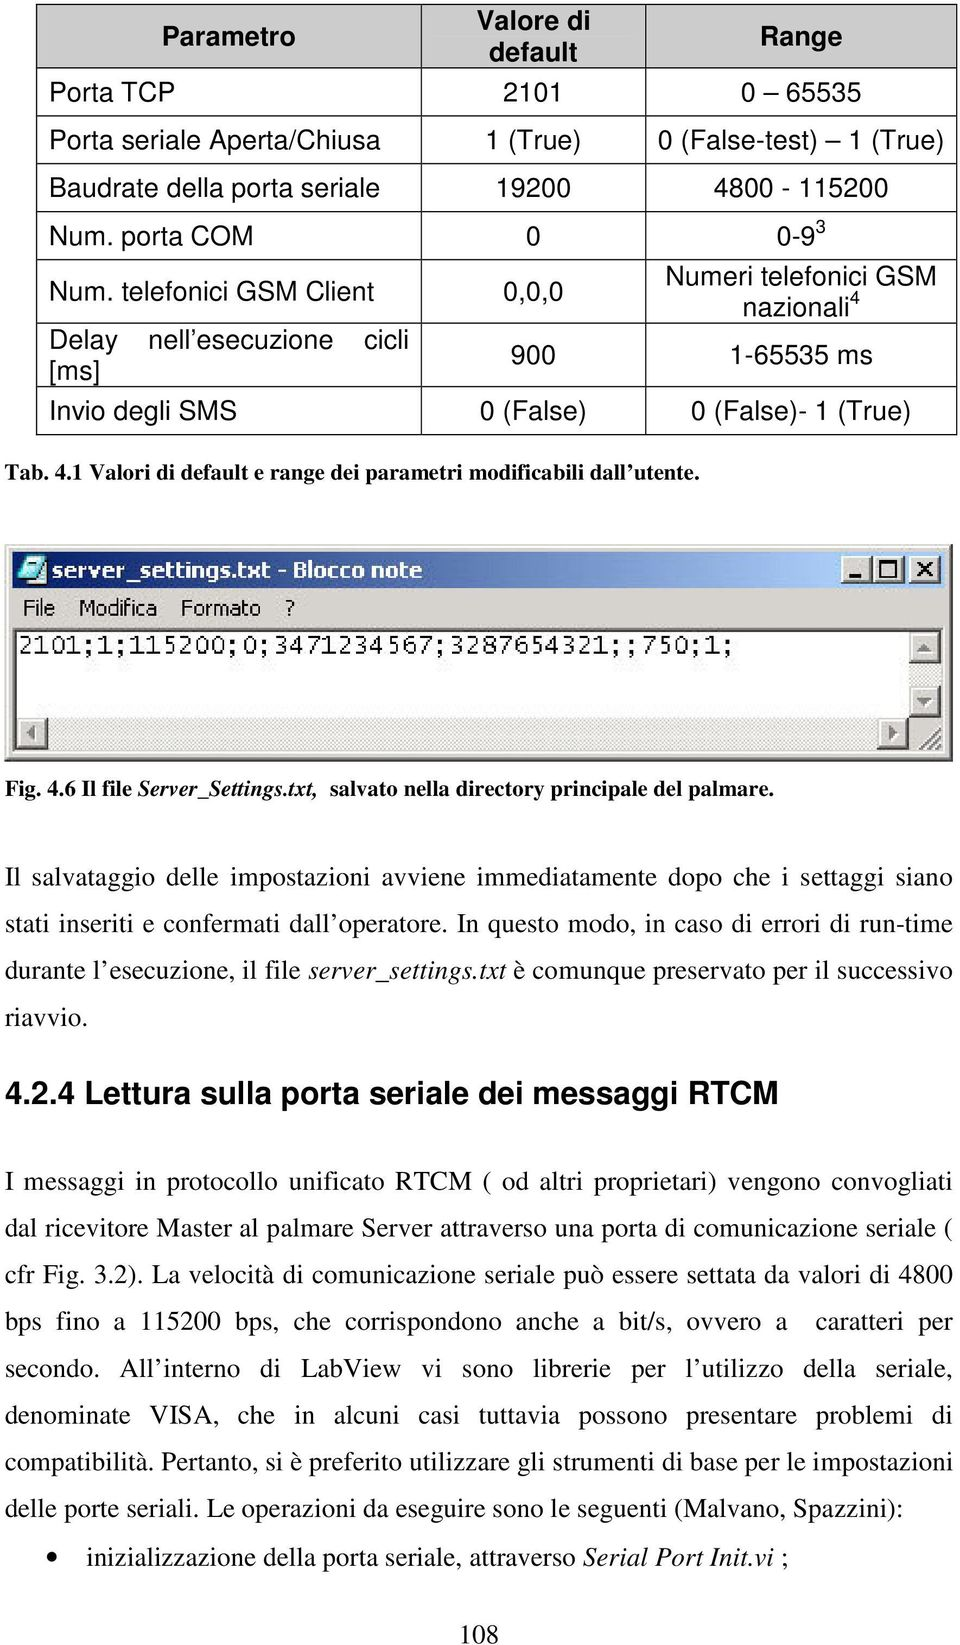 Fig. 4.6 Il file Server_Settings.txt, salvato nella directory principale del palmare.